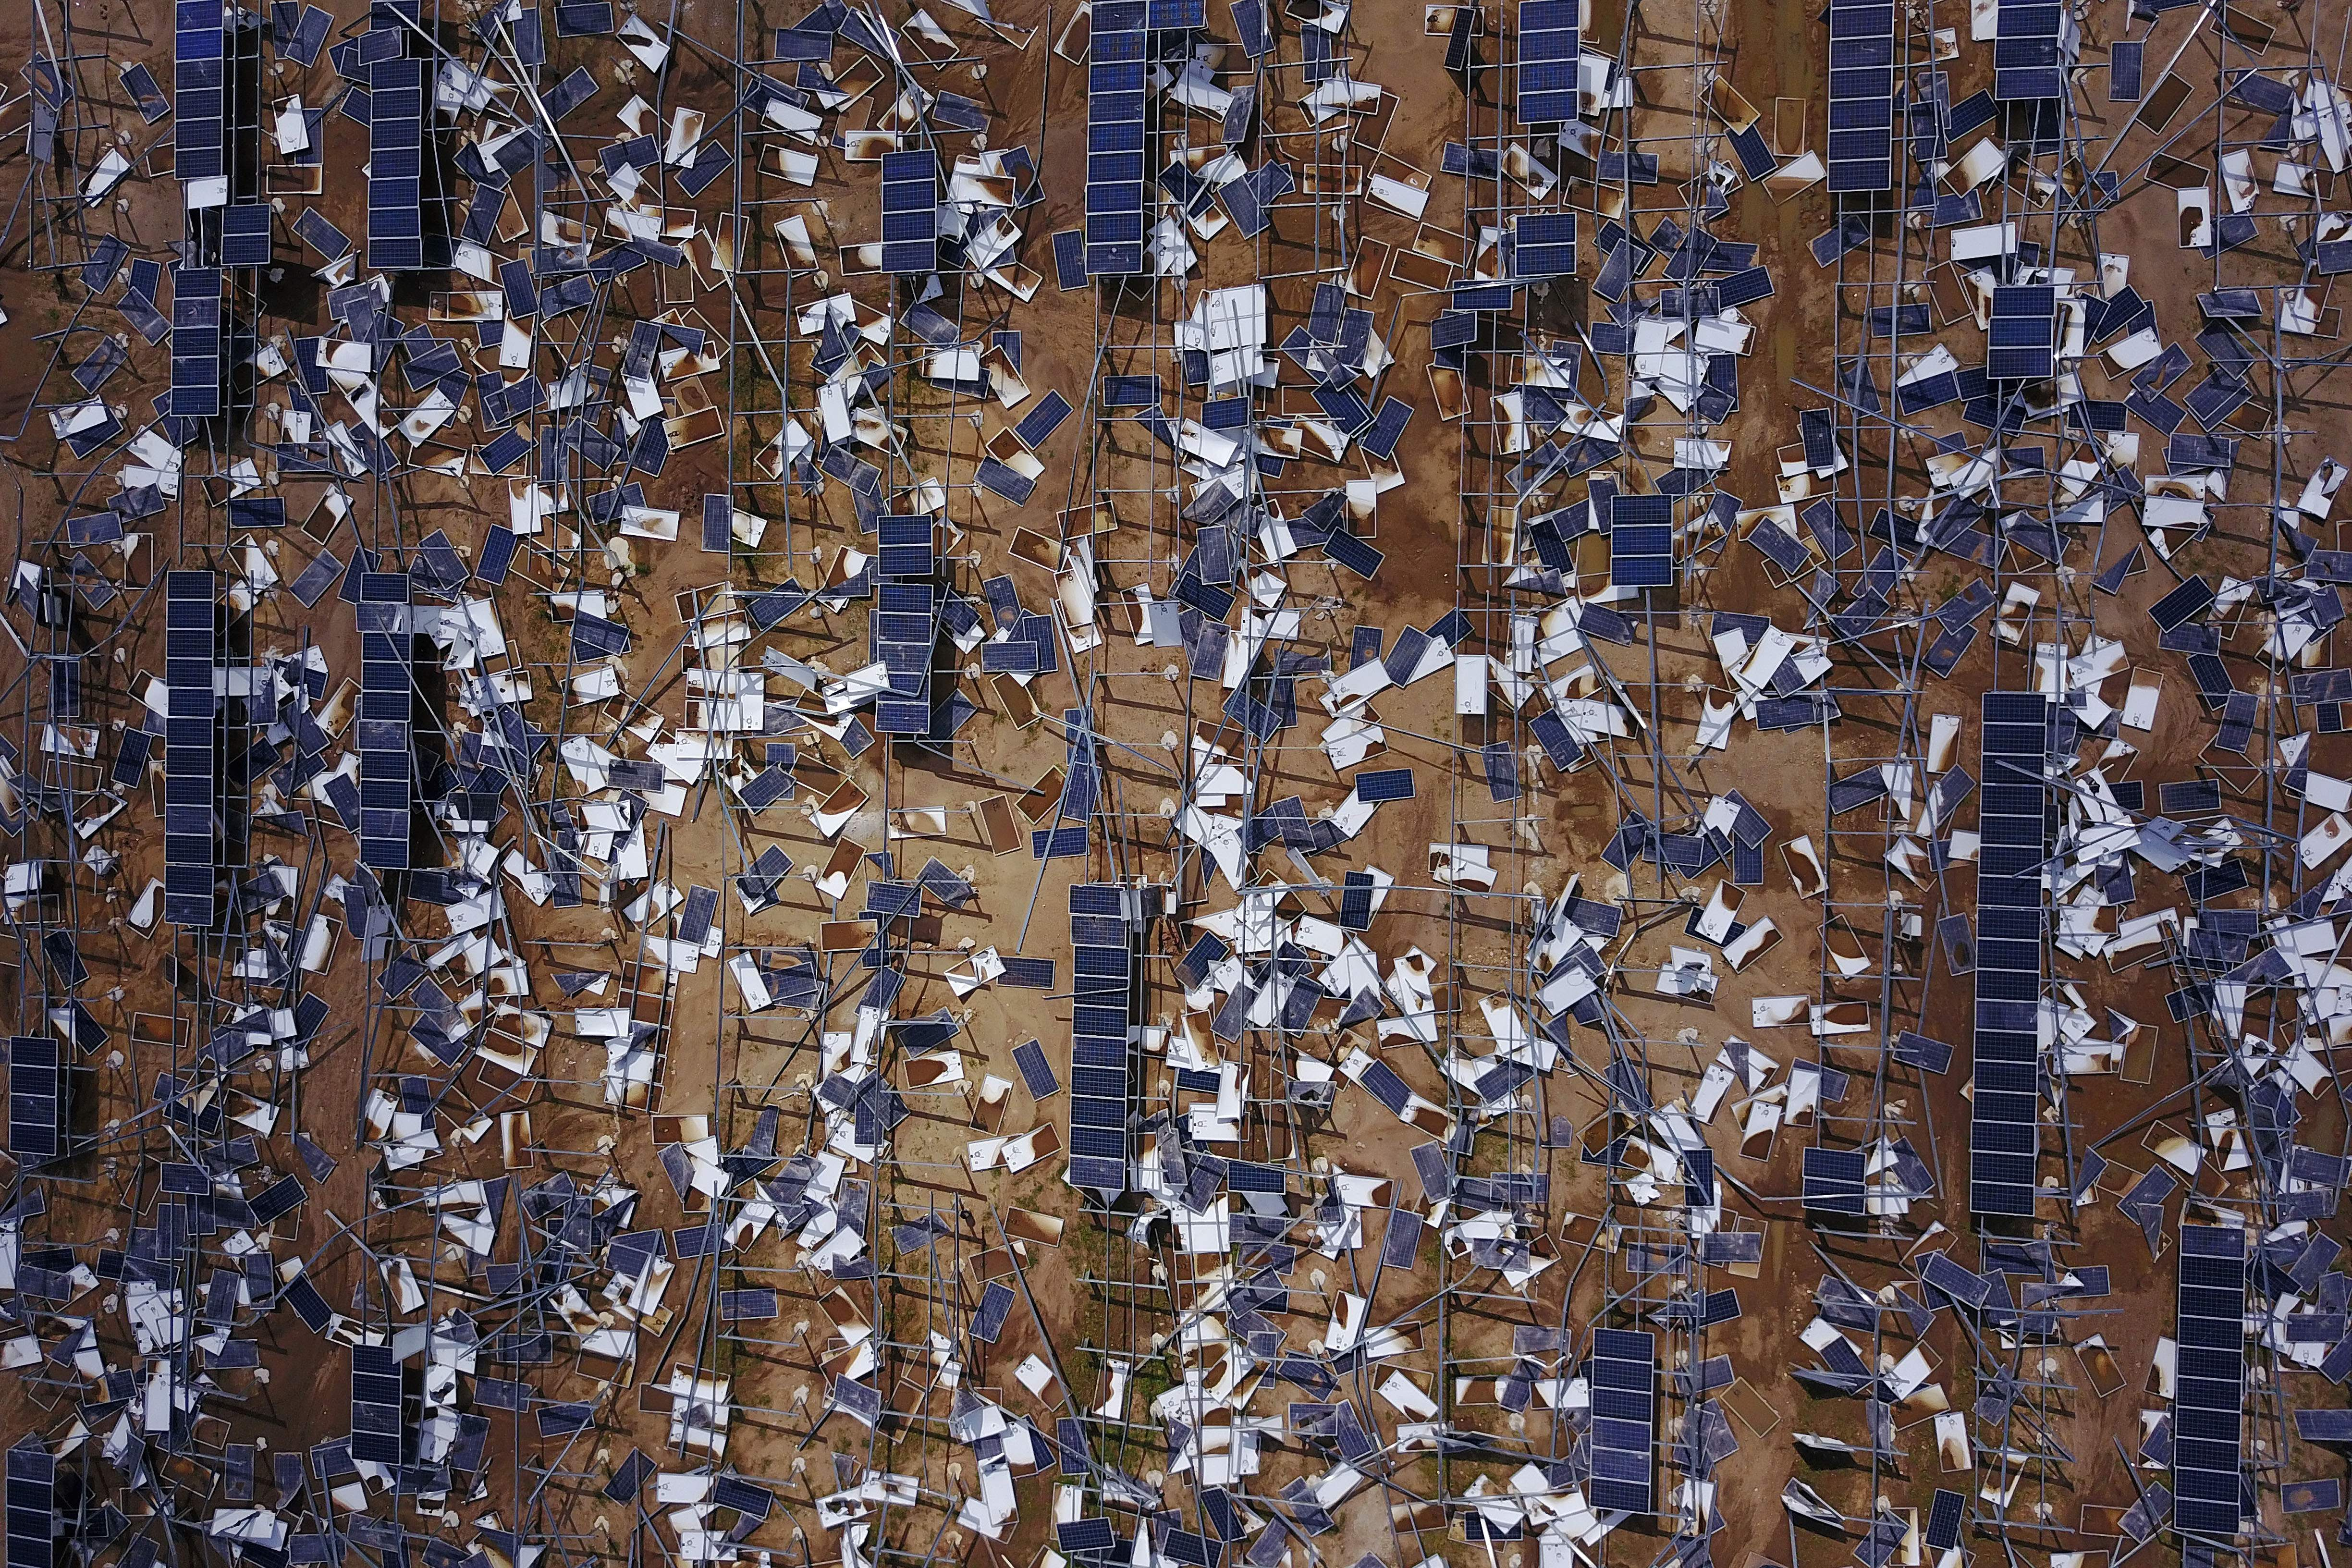 """TOPSHOT - Solar panel debris is seen scattered in a solar panel field in the aftermath of Hurricane Maria in Humacao, Puerto Rico on October 2, 2017. President Donald Trump strenuously defended US efforts to bring relief to storm-battered Puerto Rico, even as one island official said Trump was trying to gloss over """"things that are not going well,"""" two weeks after devastating Hurricane Maria left much of the island without electricity, fresh water or sufficient food. / AFP PHOTO / Ricardo ARDUENGO (Photo credit should read RICARDO ARDUENGO/AFP/Getty Images)"""